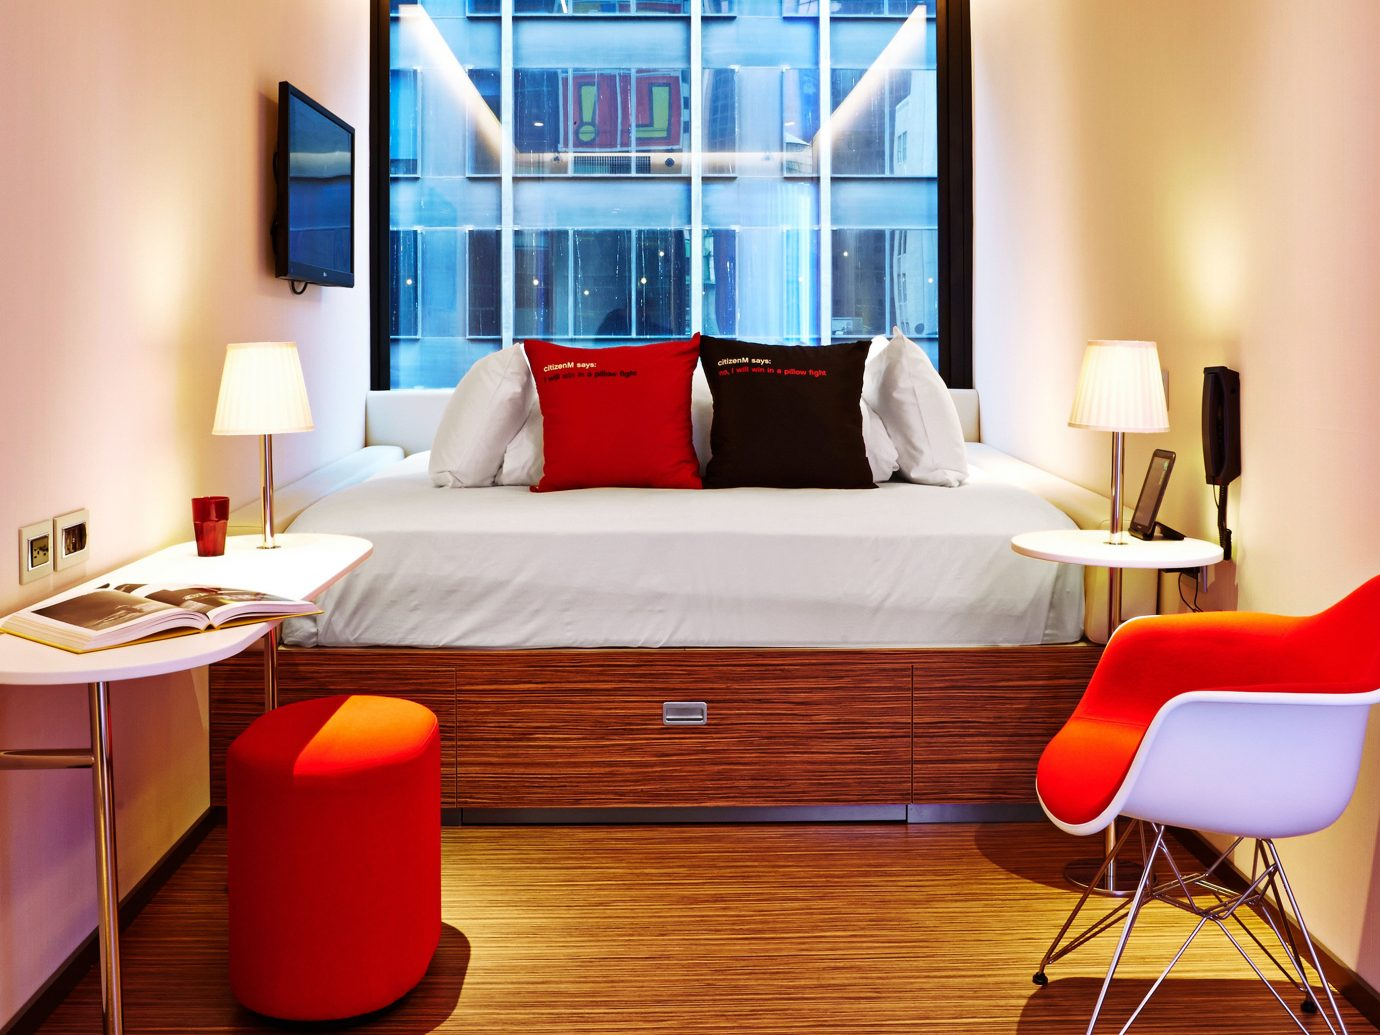 Bedroom Budget City Modern indoor floor wall room property living room furniture interior design Suite home dining room Design office table apartment waiting room area wood